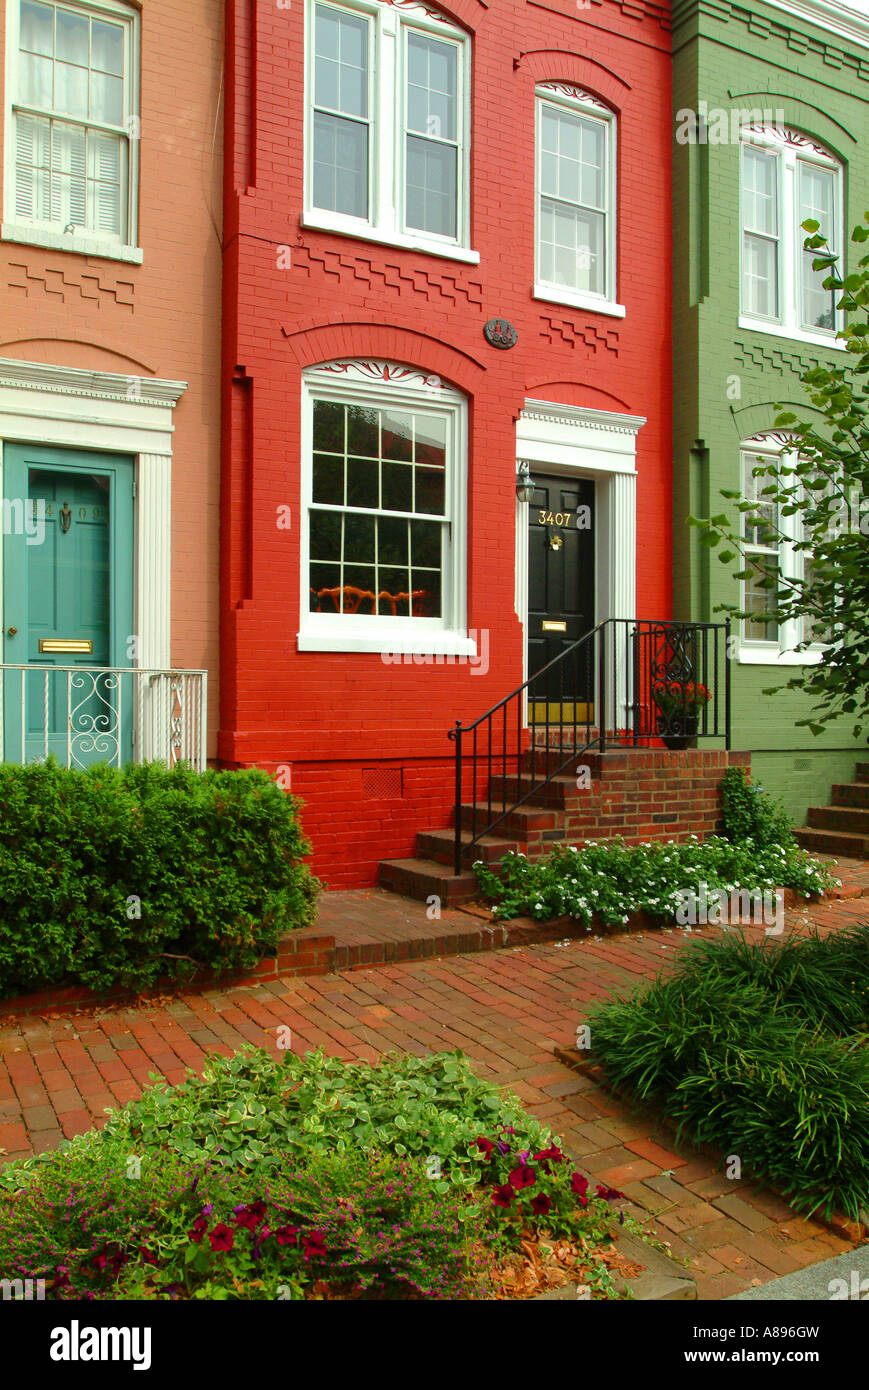 USA Washington DC Georgetown Row housesStock Photo